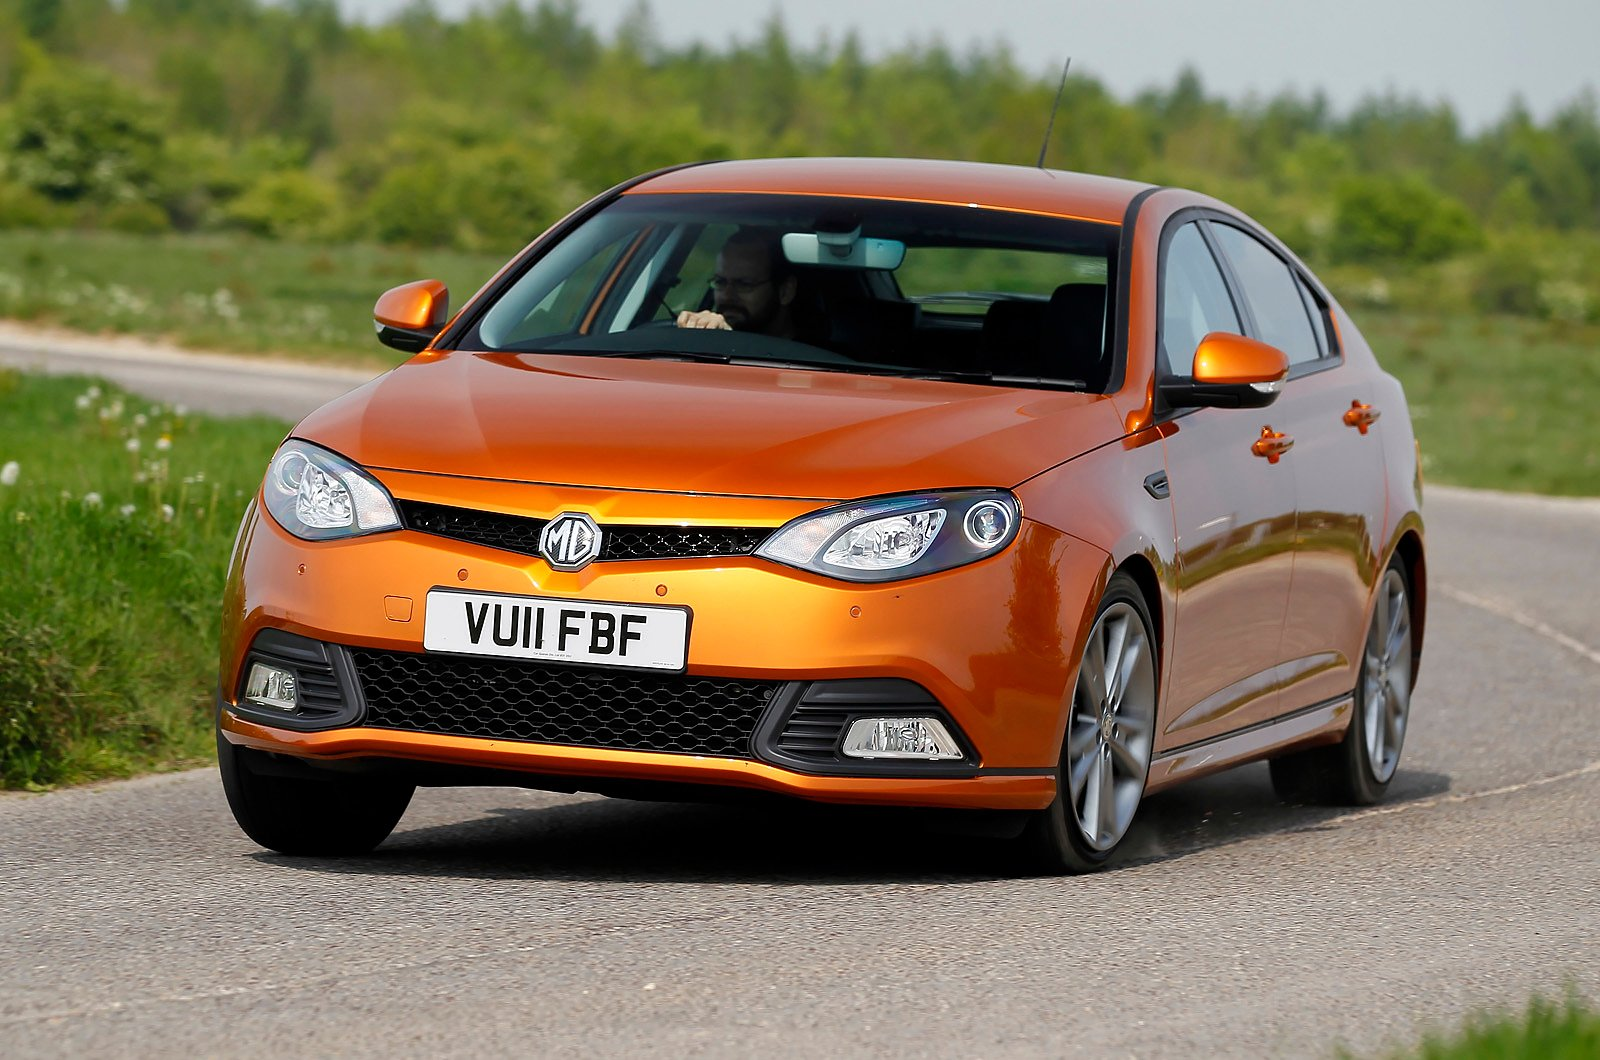 Latest Cool Car Wallpapers Mg Cars 2013 Free Download